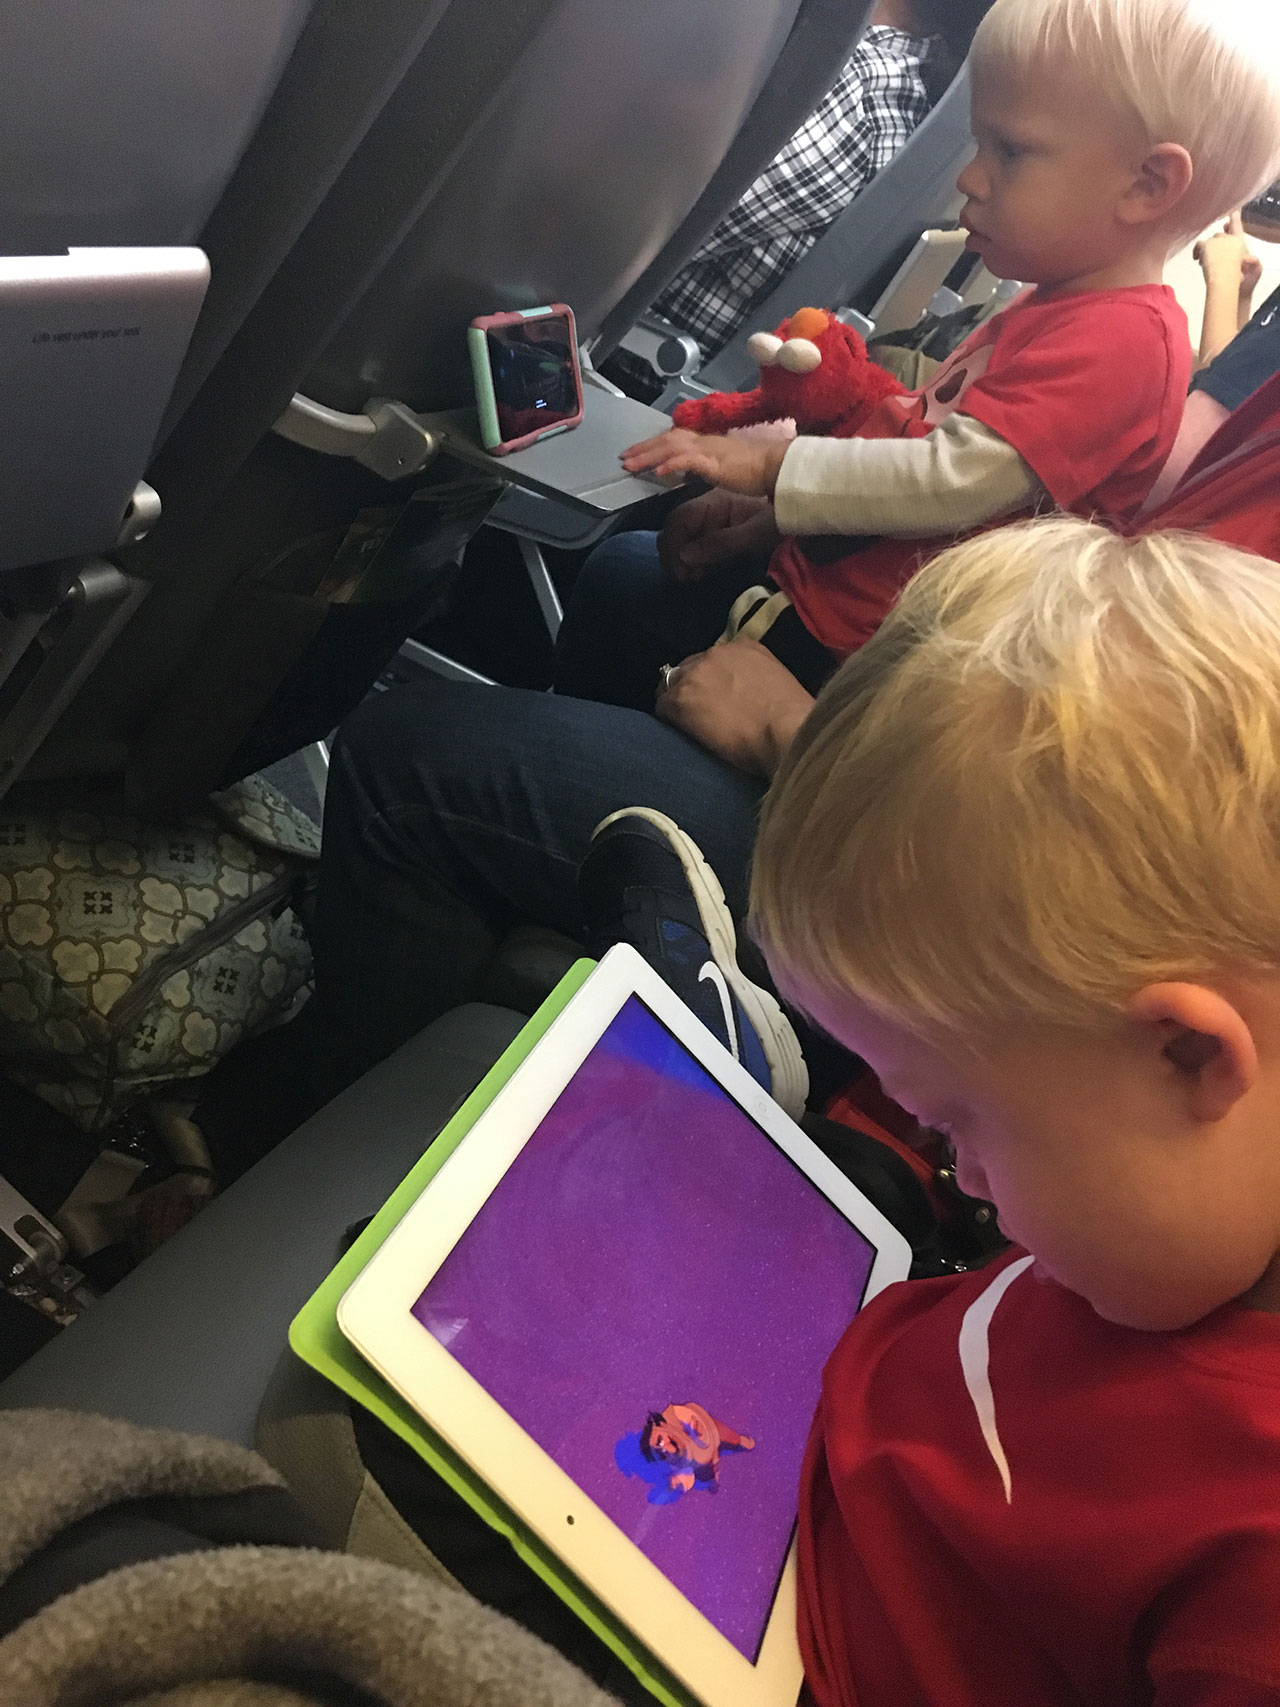 child with down syndrome using iPad on plane